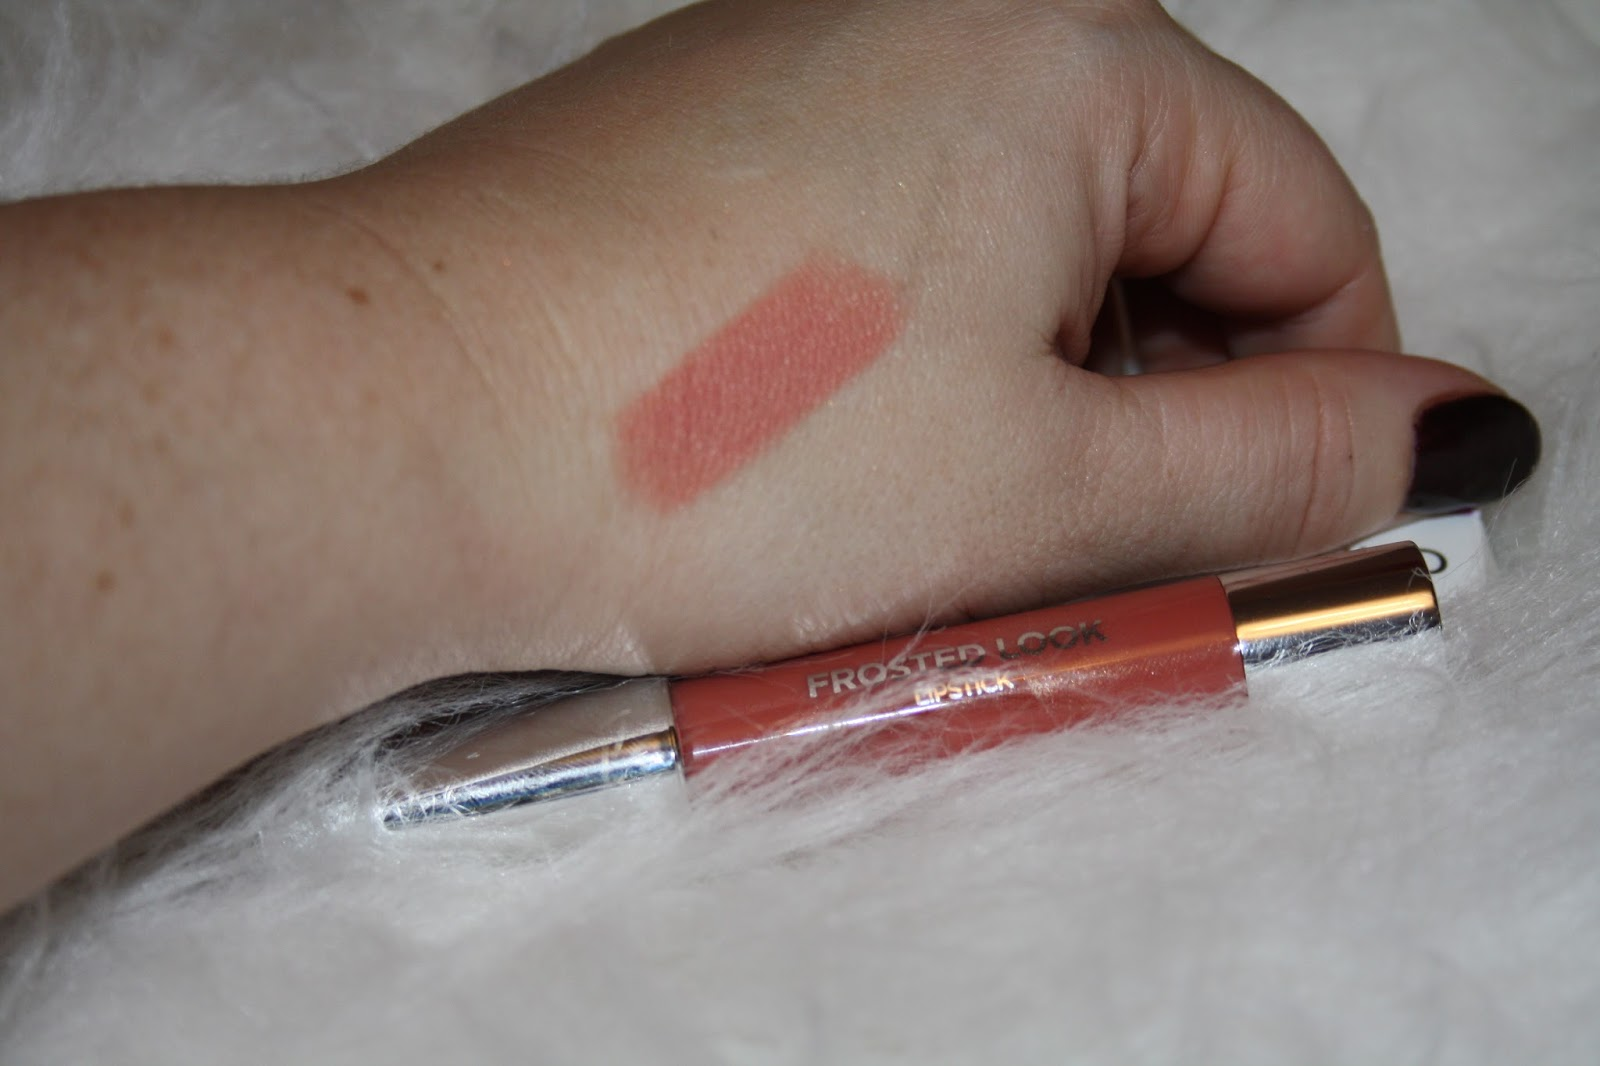 KIKO Frosted Look Lipstick Swatch